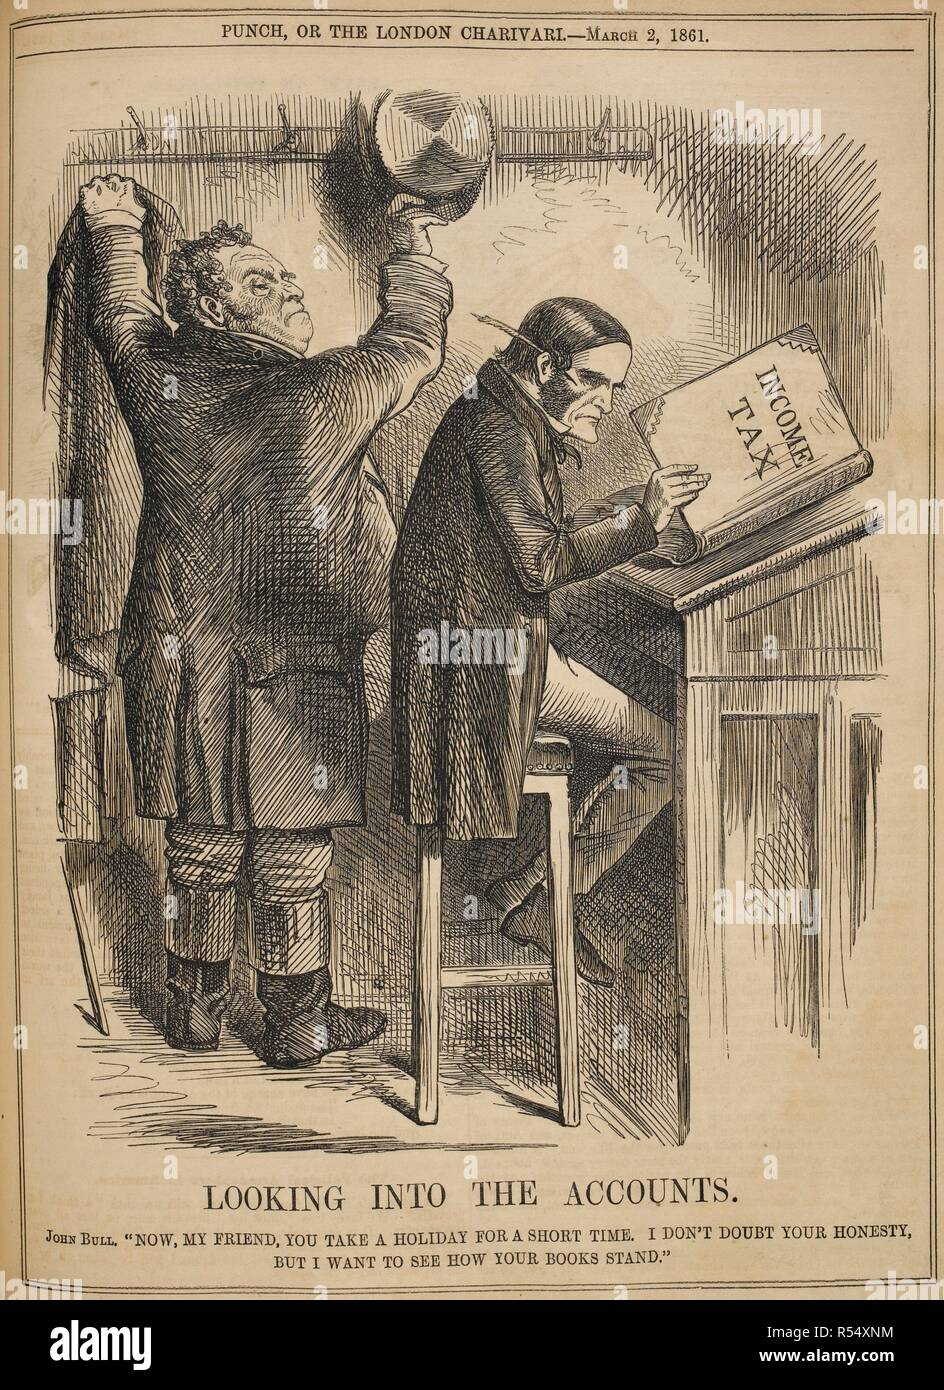 Looking into the accounts. John Bull. 'Now, my friend, you take a holiday for a short time. I don't doubt your honesty, but I want to see how your books stand'. Illustration in 'Punch', 1861. Punch, or the London Charivari. London, March 2, 1861. A political cartoon, drawn in black and white. Source: P.P.5270.ah, page 91. - Stock Image